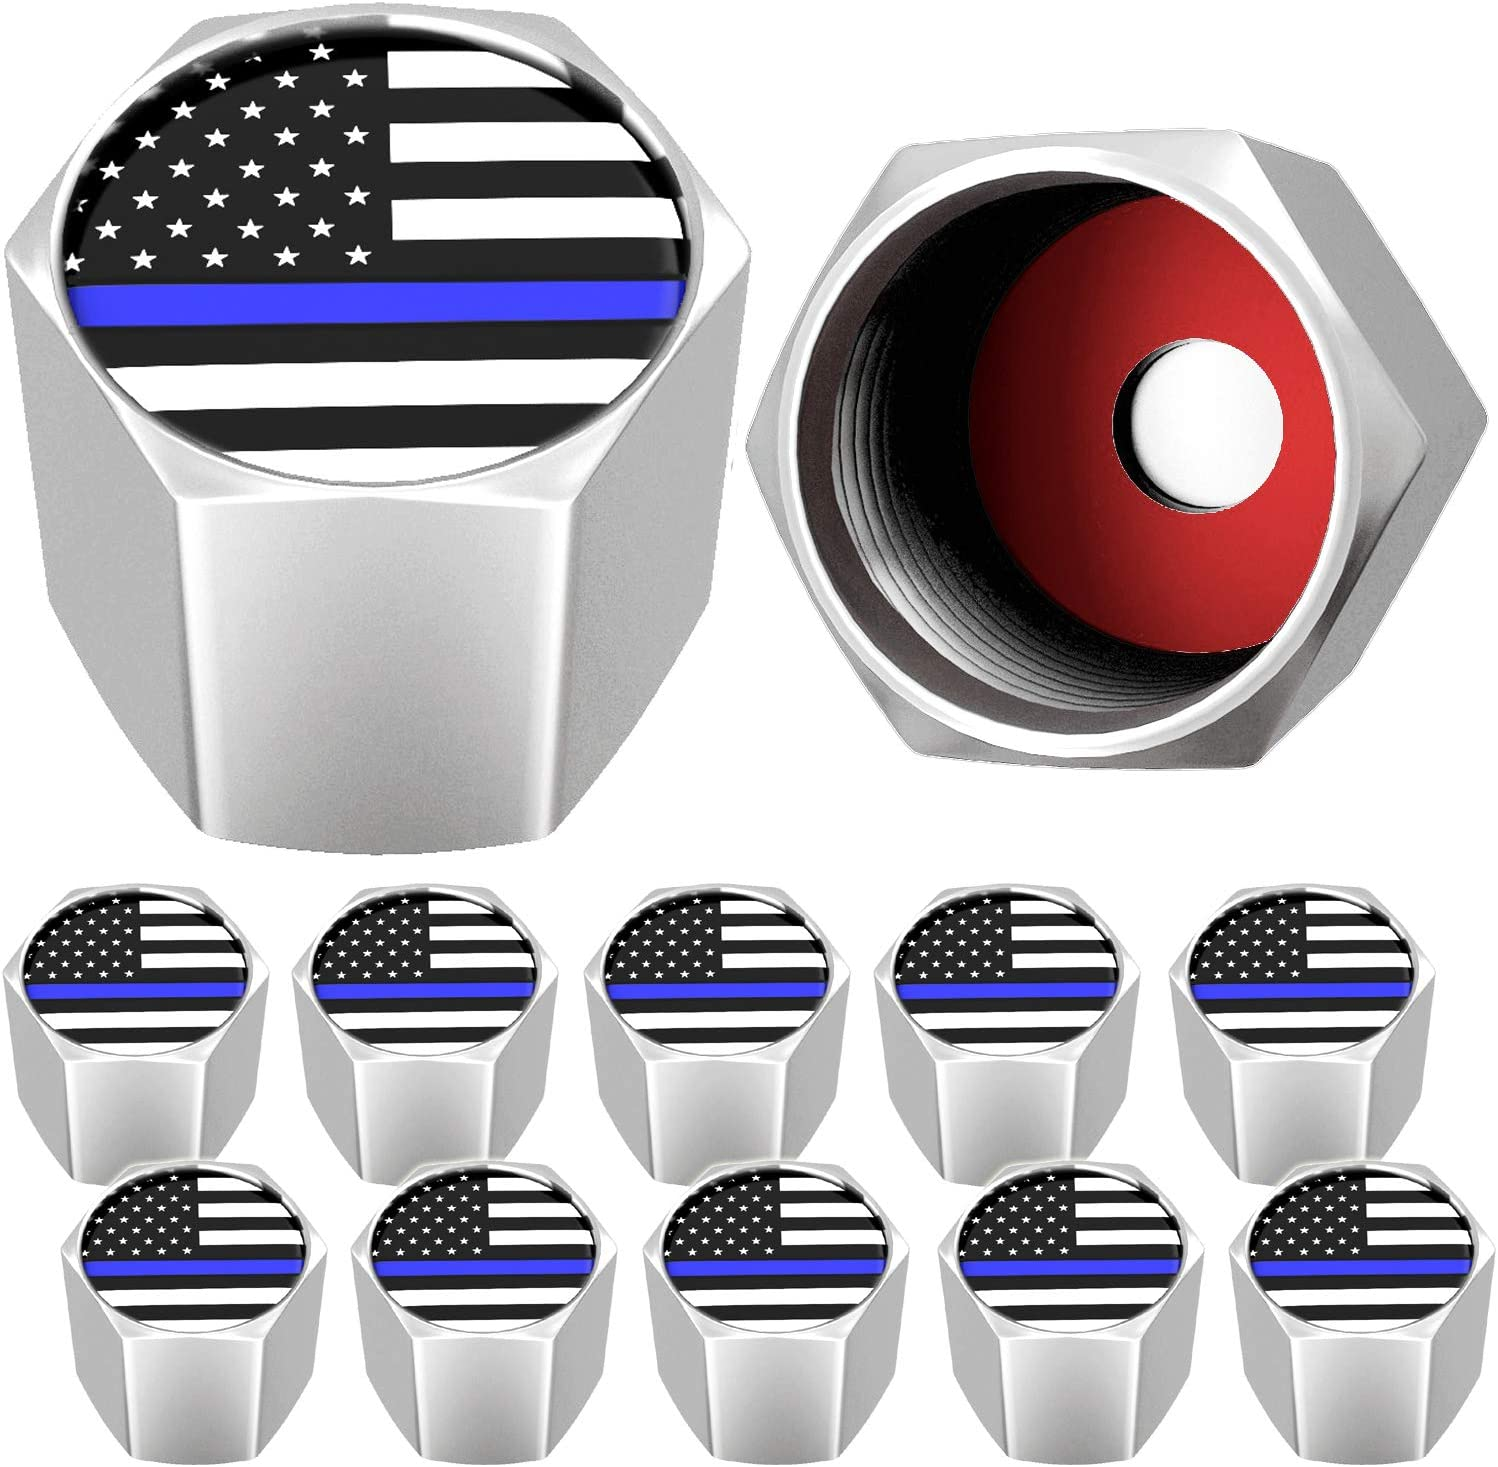 Seal Heavy Duty Bicycle SUVs Bike SAMIKIVA American Flag Chrome Tire Valve Stem Caps Chrome Gray 12 Pack Motorcycles Trucks USA with O Rubber Ring Universal Stem Covers for Cars